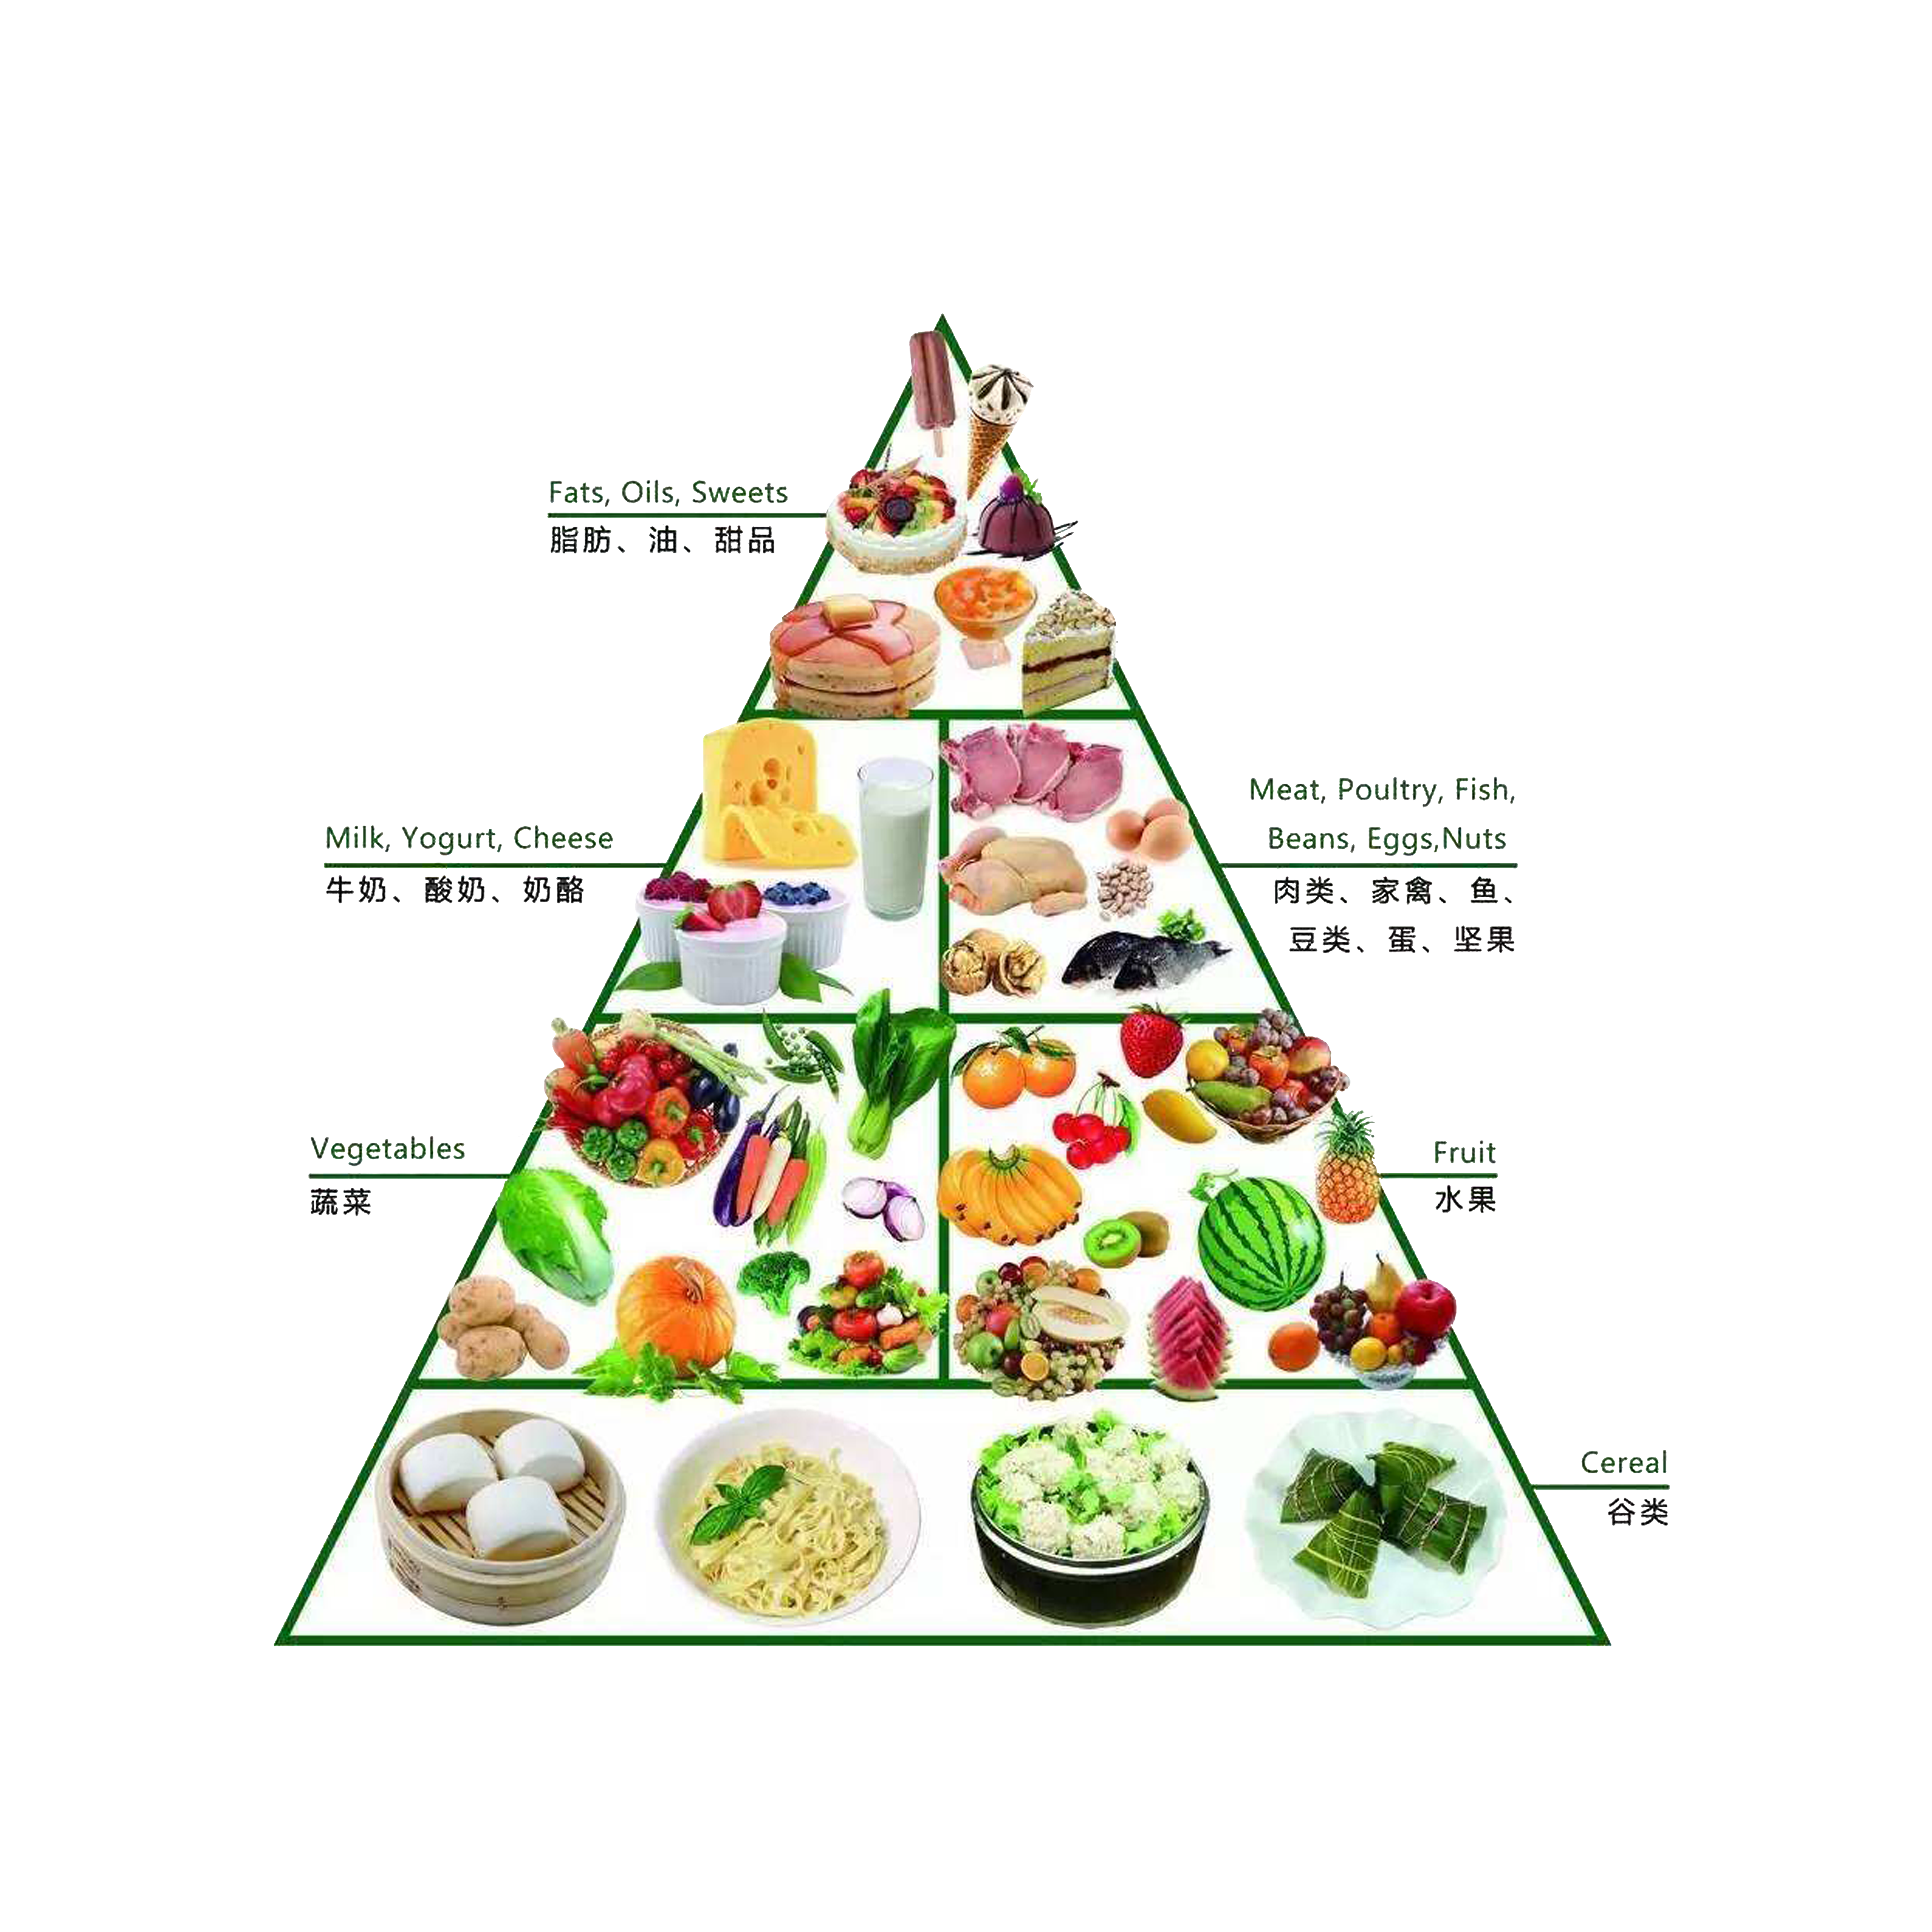 Food pyramid png. Dietary supplement nutrition healthy